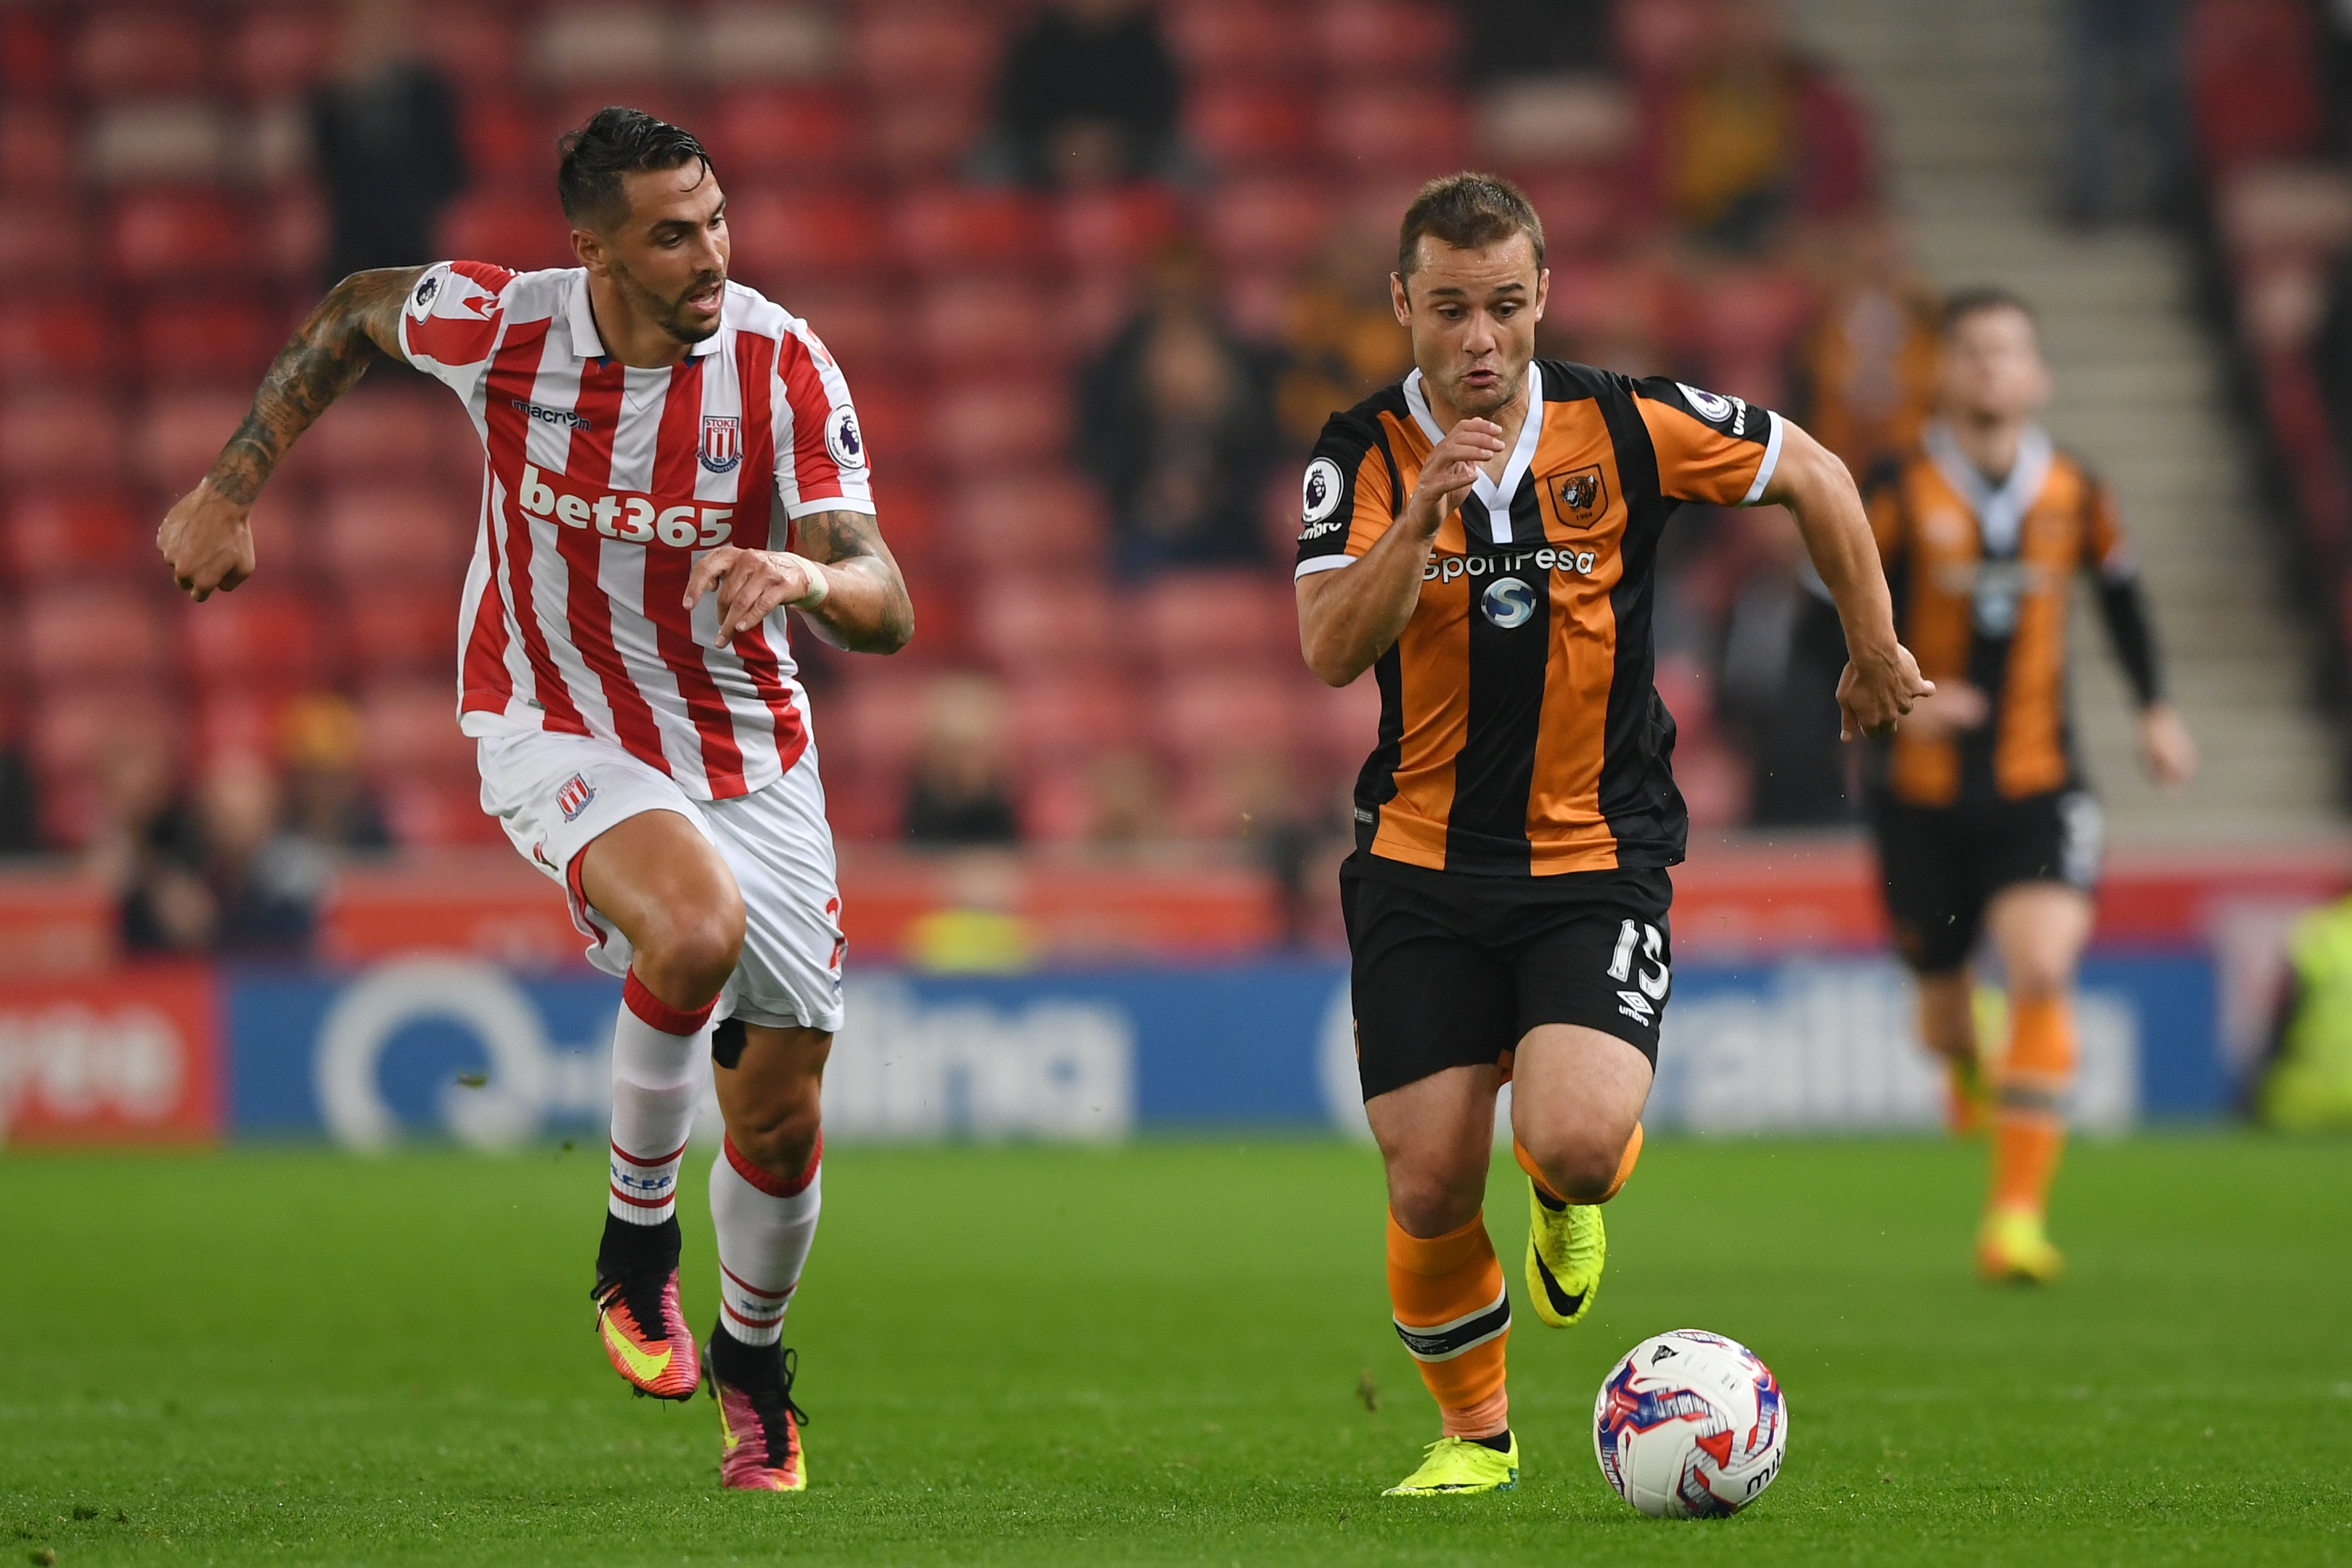 Shaun Maloney of Hull City and Geoff Cameron of Stoke City in action  (Gareth Copley/Getty Images)